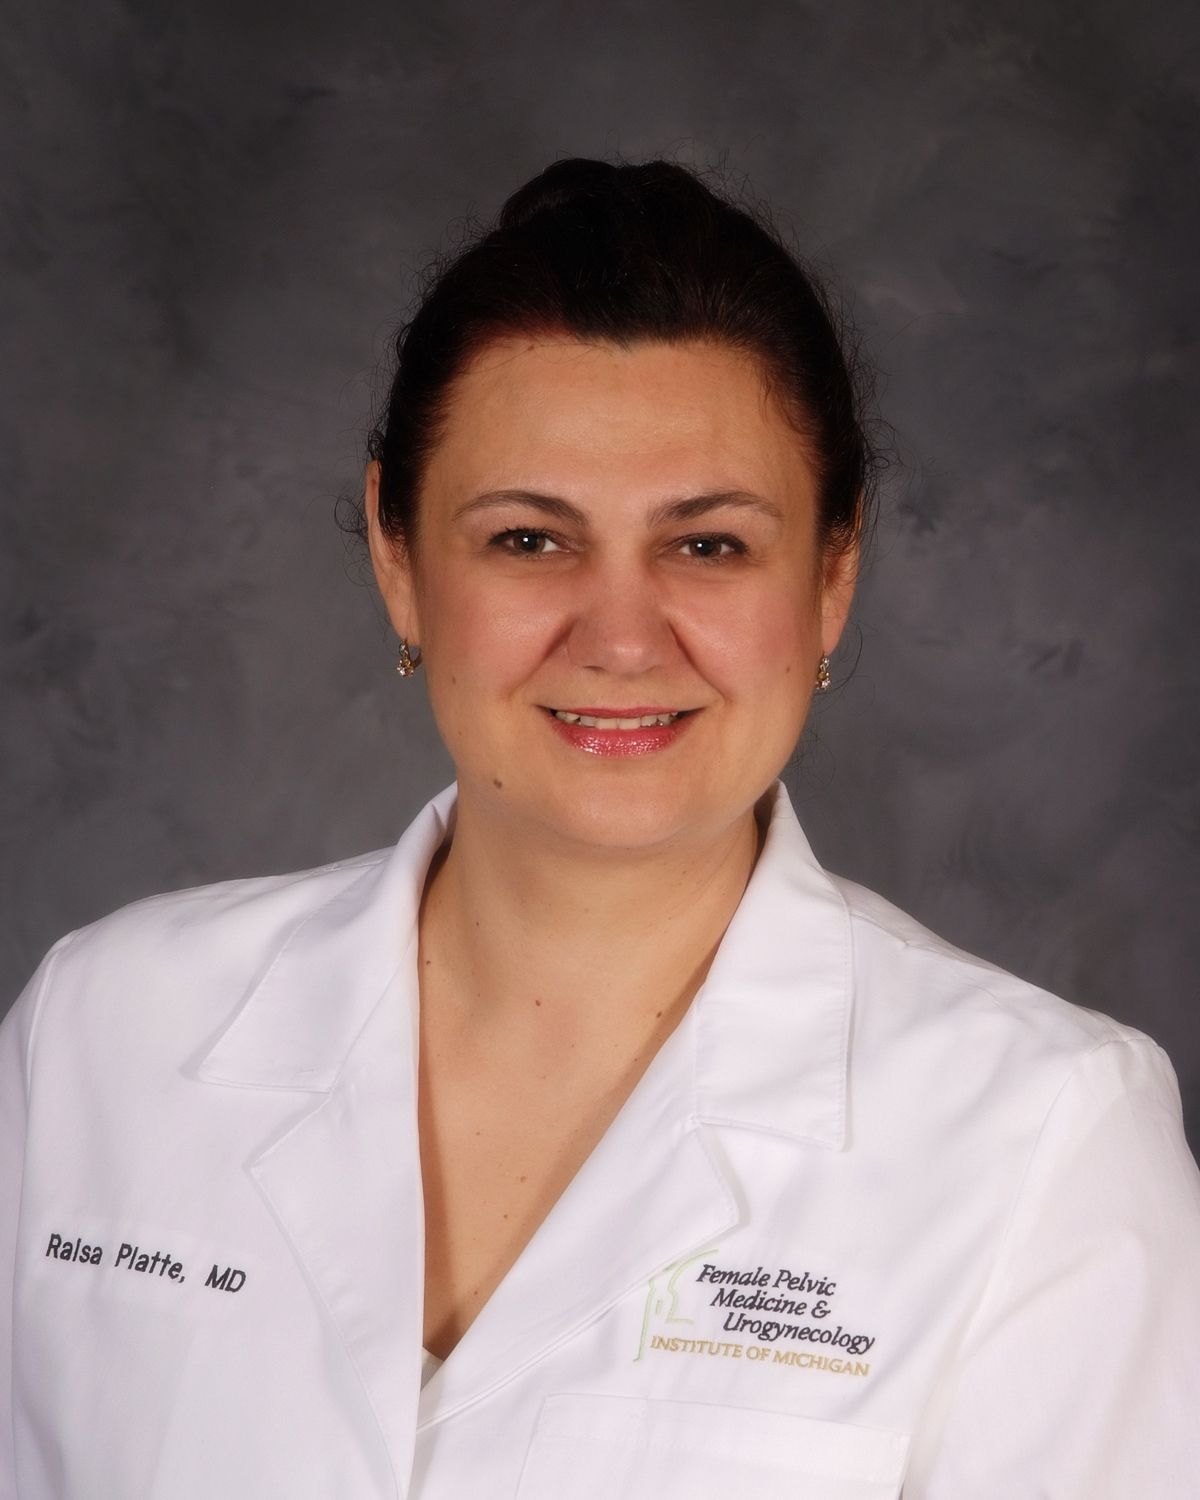 Dr. Raisa Platte, MD